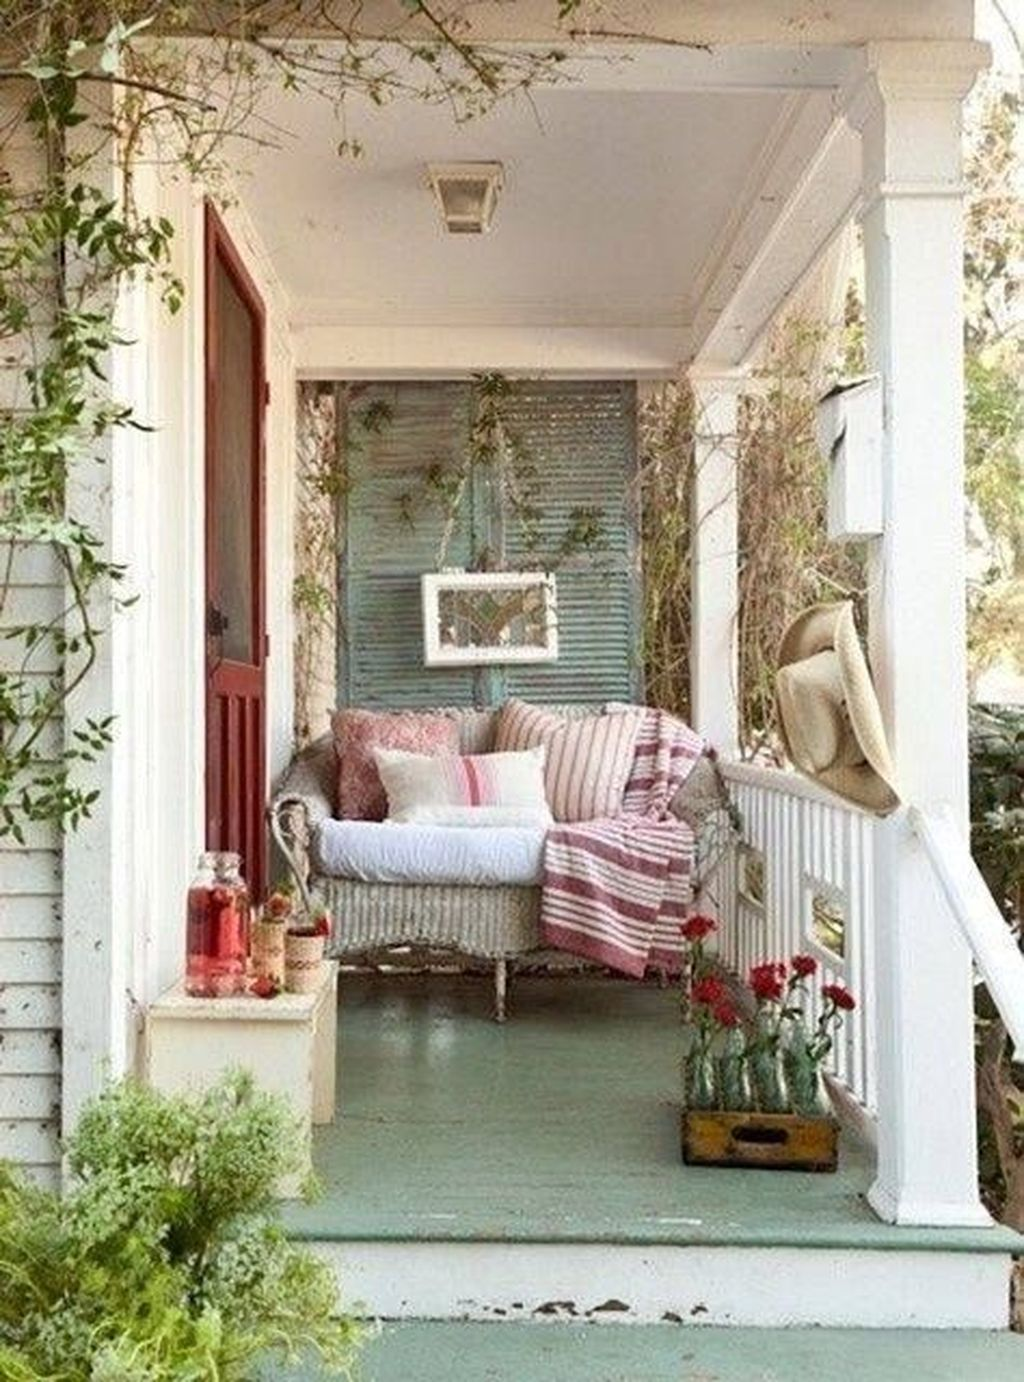 Charmant Nice 99 Easy Diy Farmhouse Front Porch Decorating Ideas. More At Http://